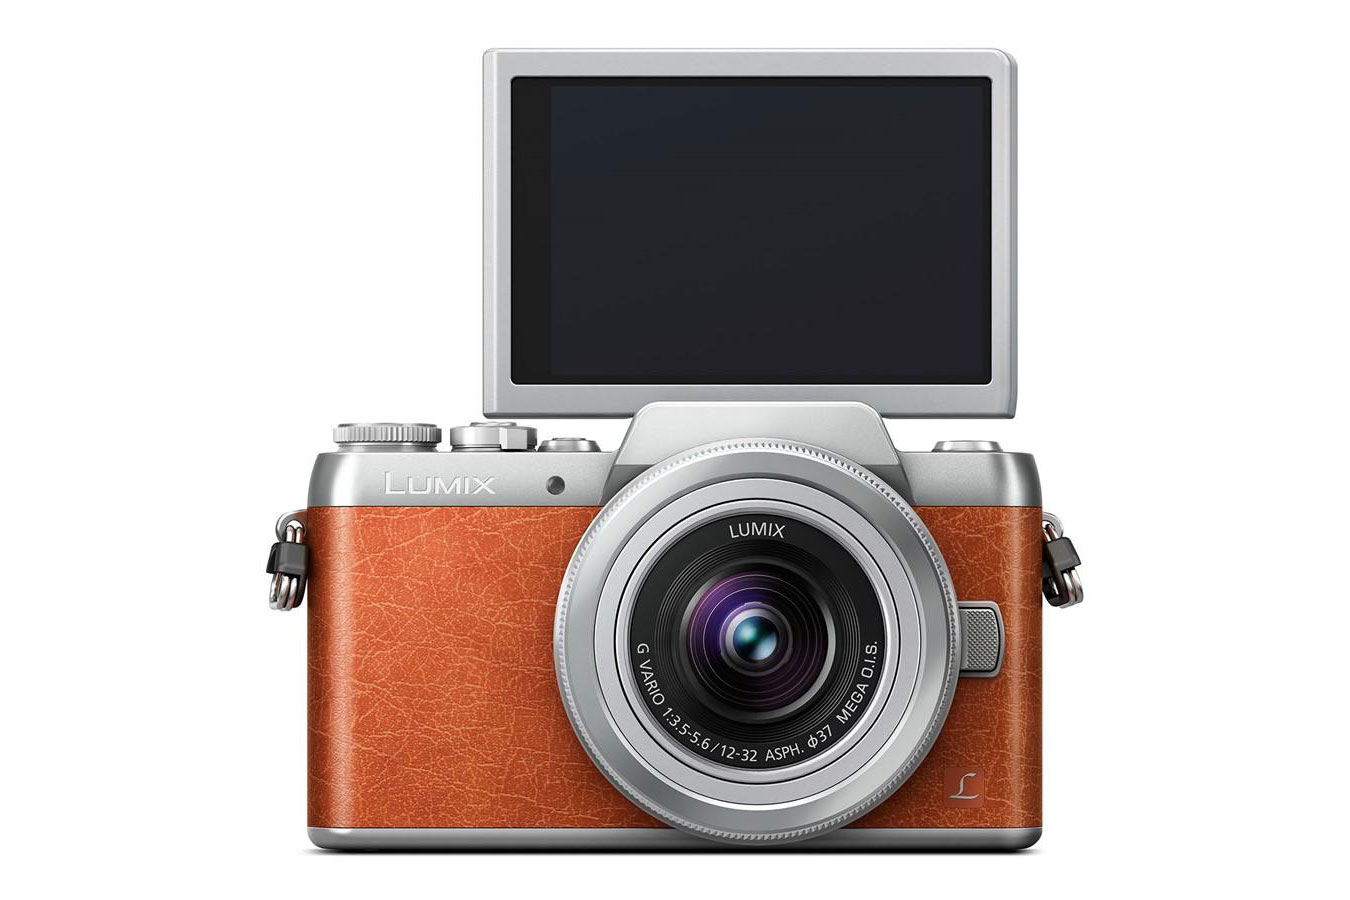 The Panasonic Lumix GF8 Is Selfie-Friendly